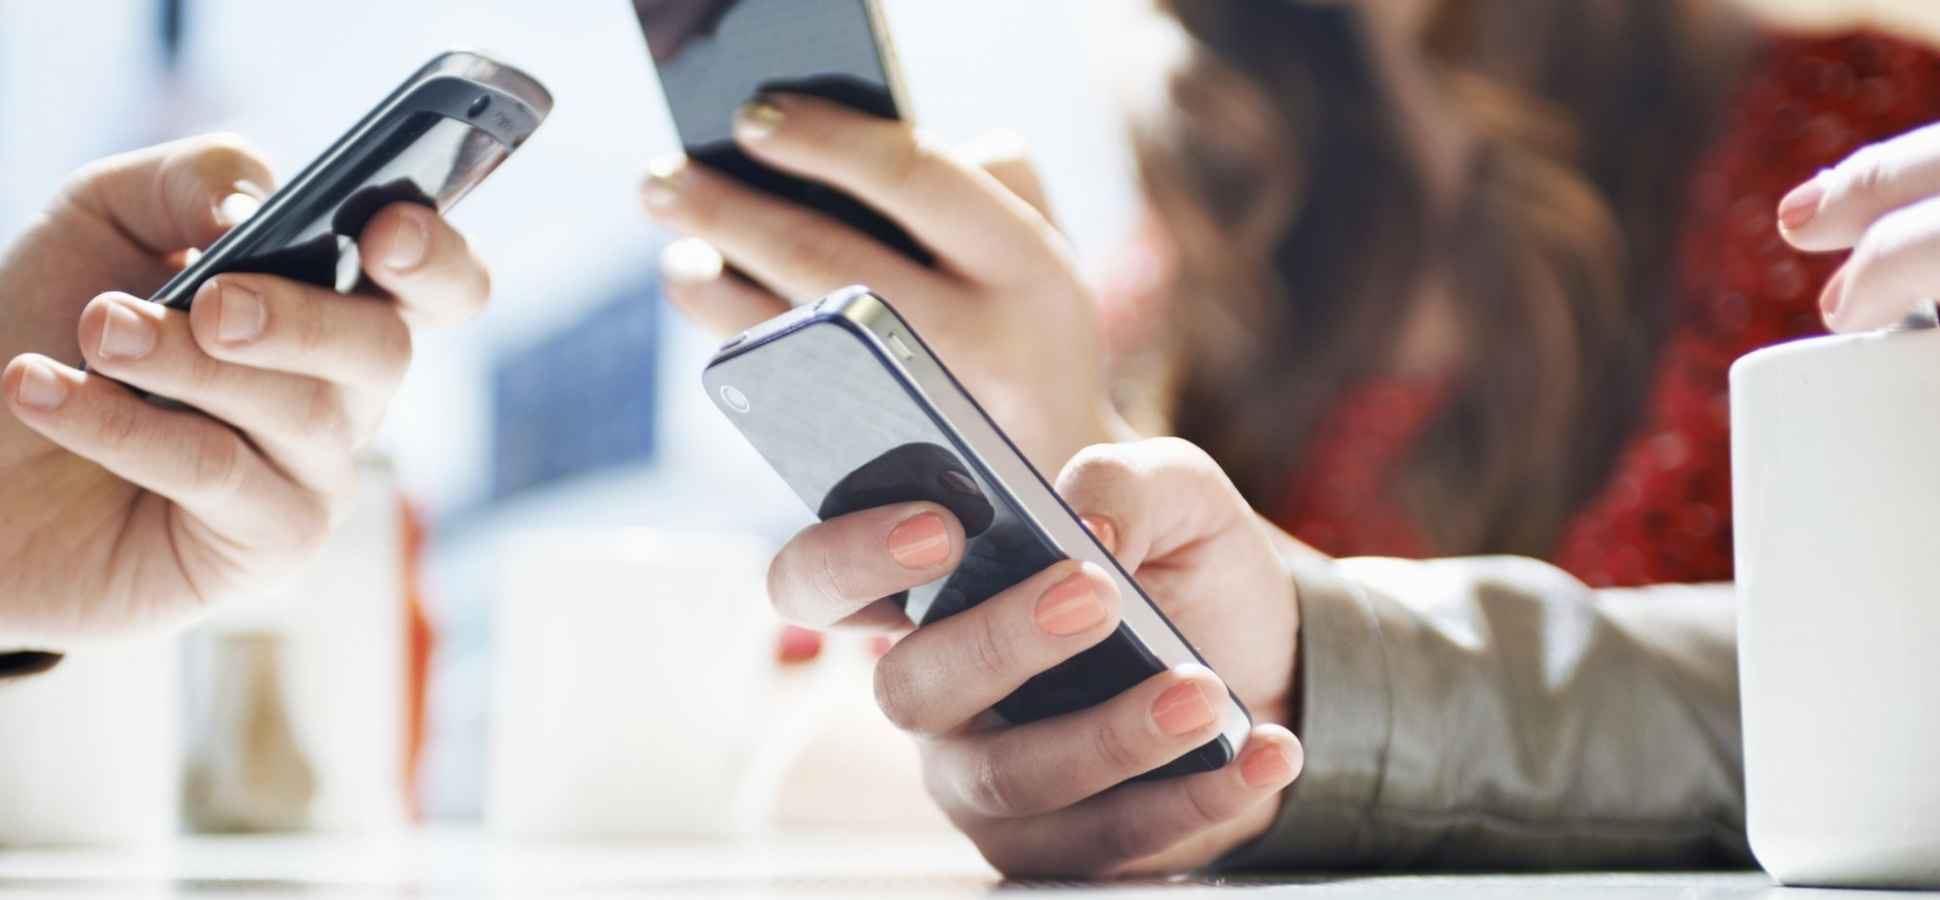 Now Is the Time to Develop Your Mobile Strategy